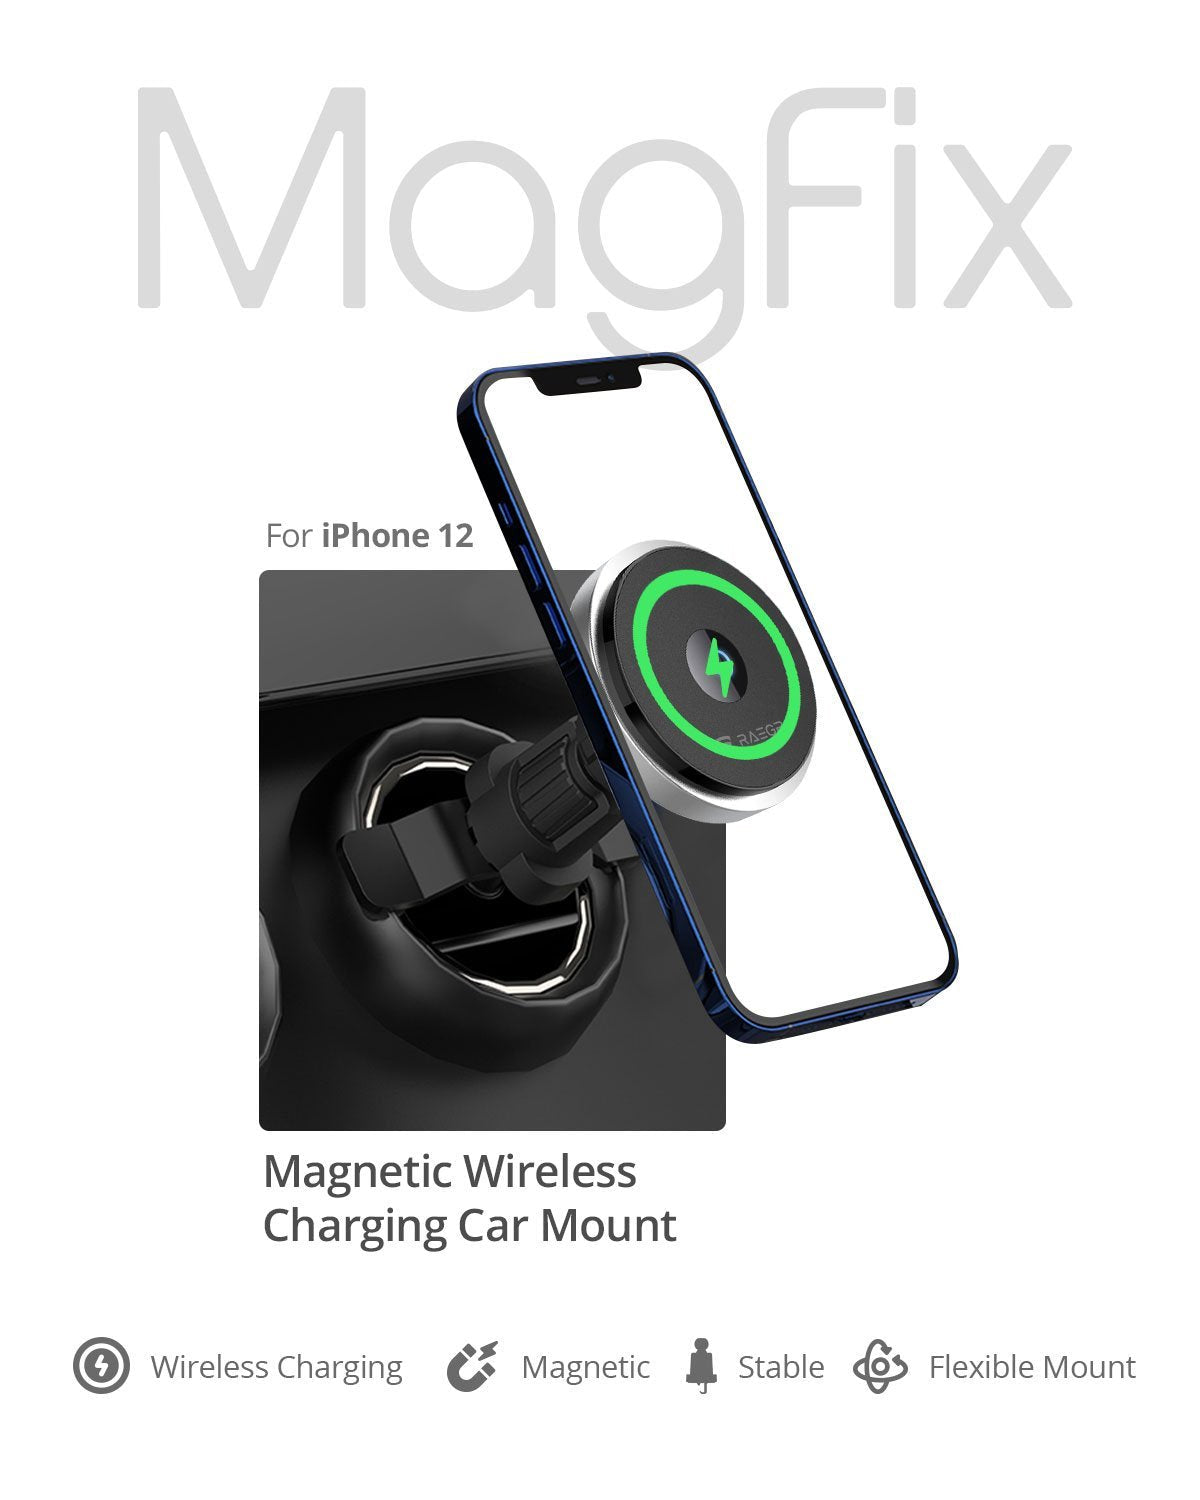 RAEGR MagFix Arc M1300 15W Mag-Safe Wireless Car Charger / Wireless Charging Magnetic Mount